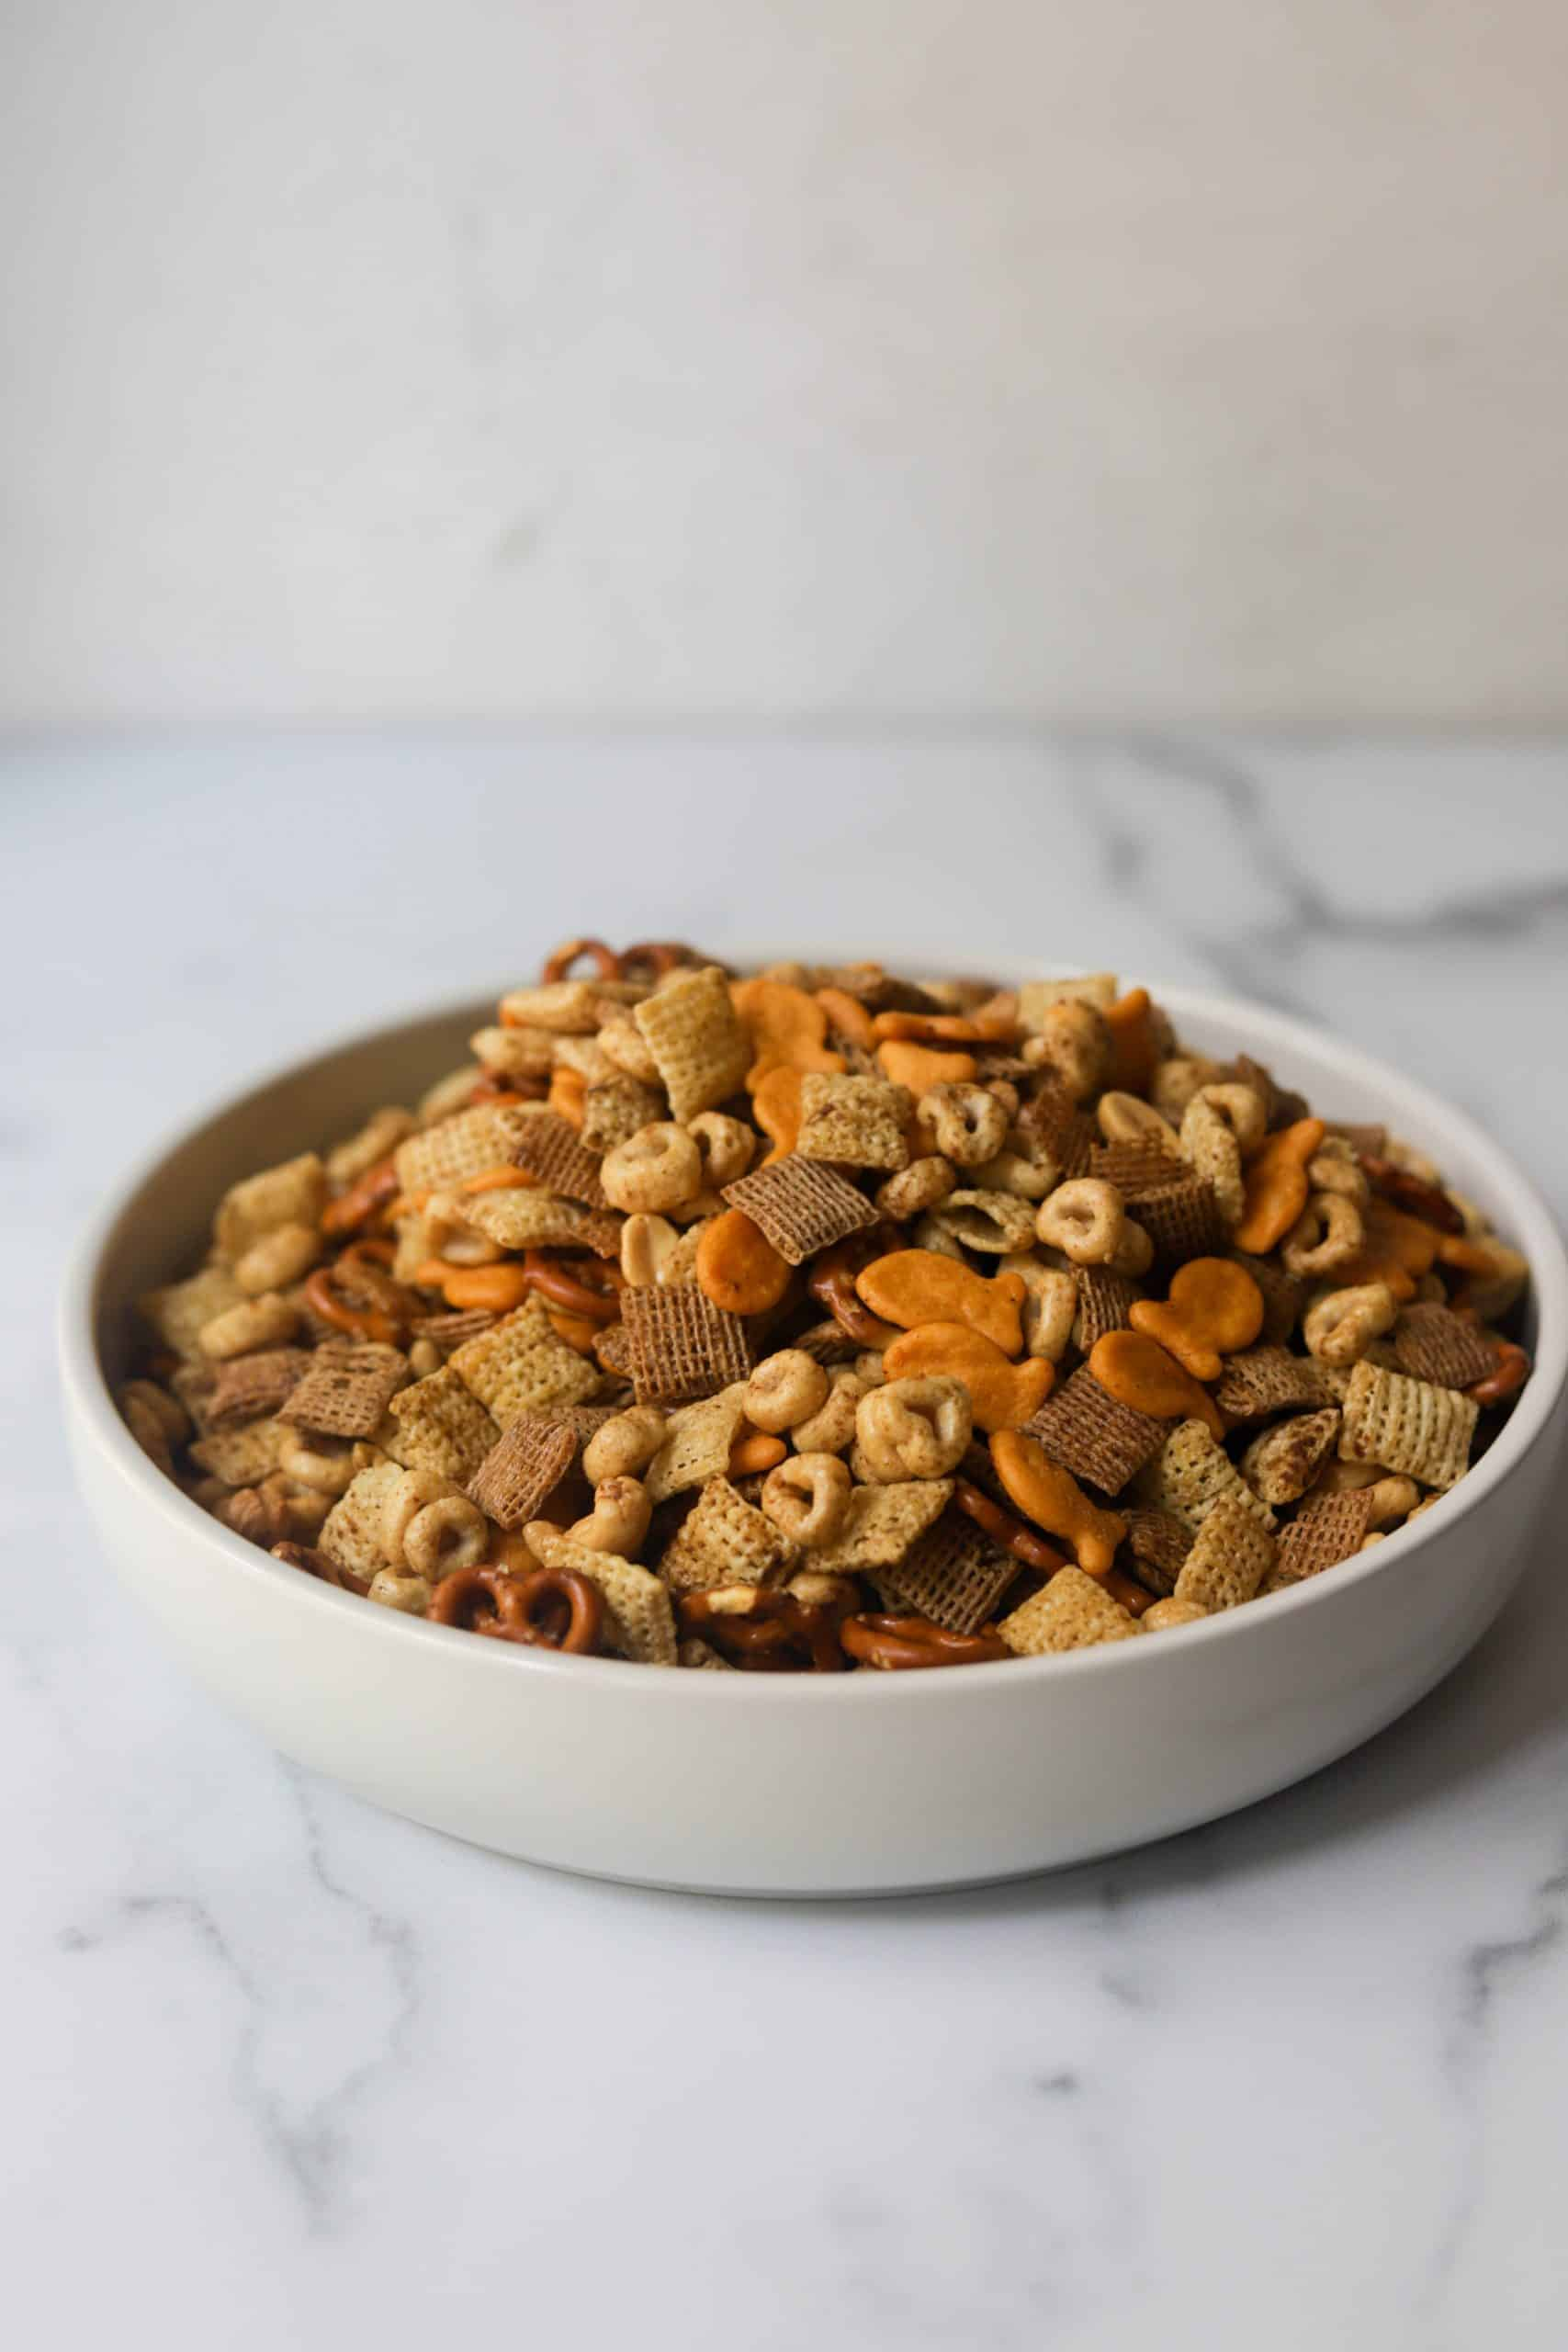 A side shot of a white bowl filled with chex mix.